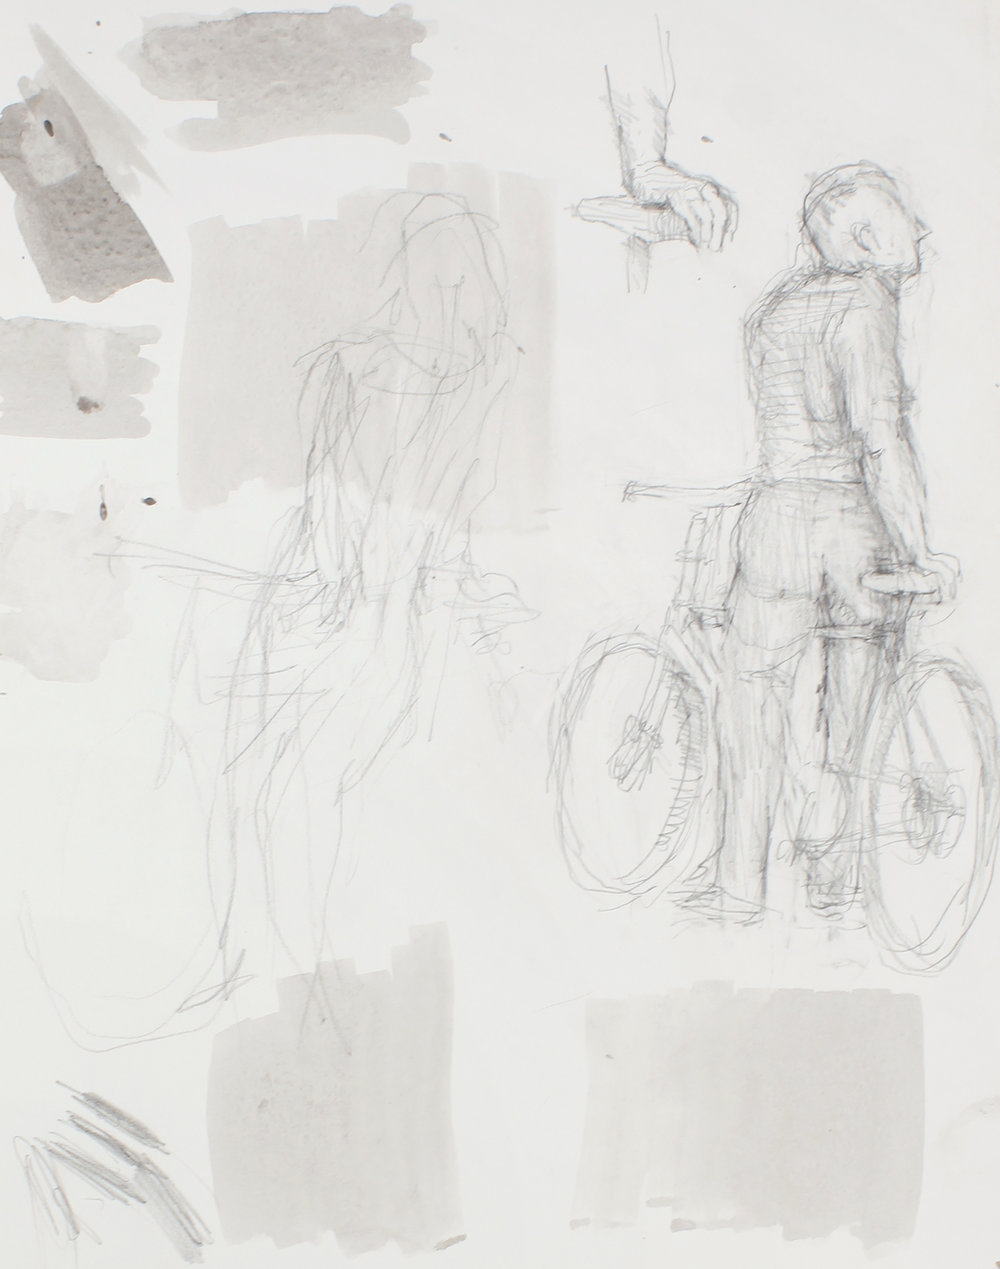 Study of Man with Bicycle From Back and Detail